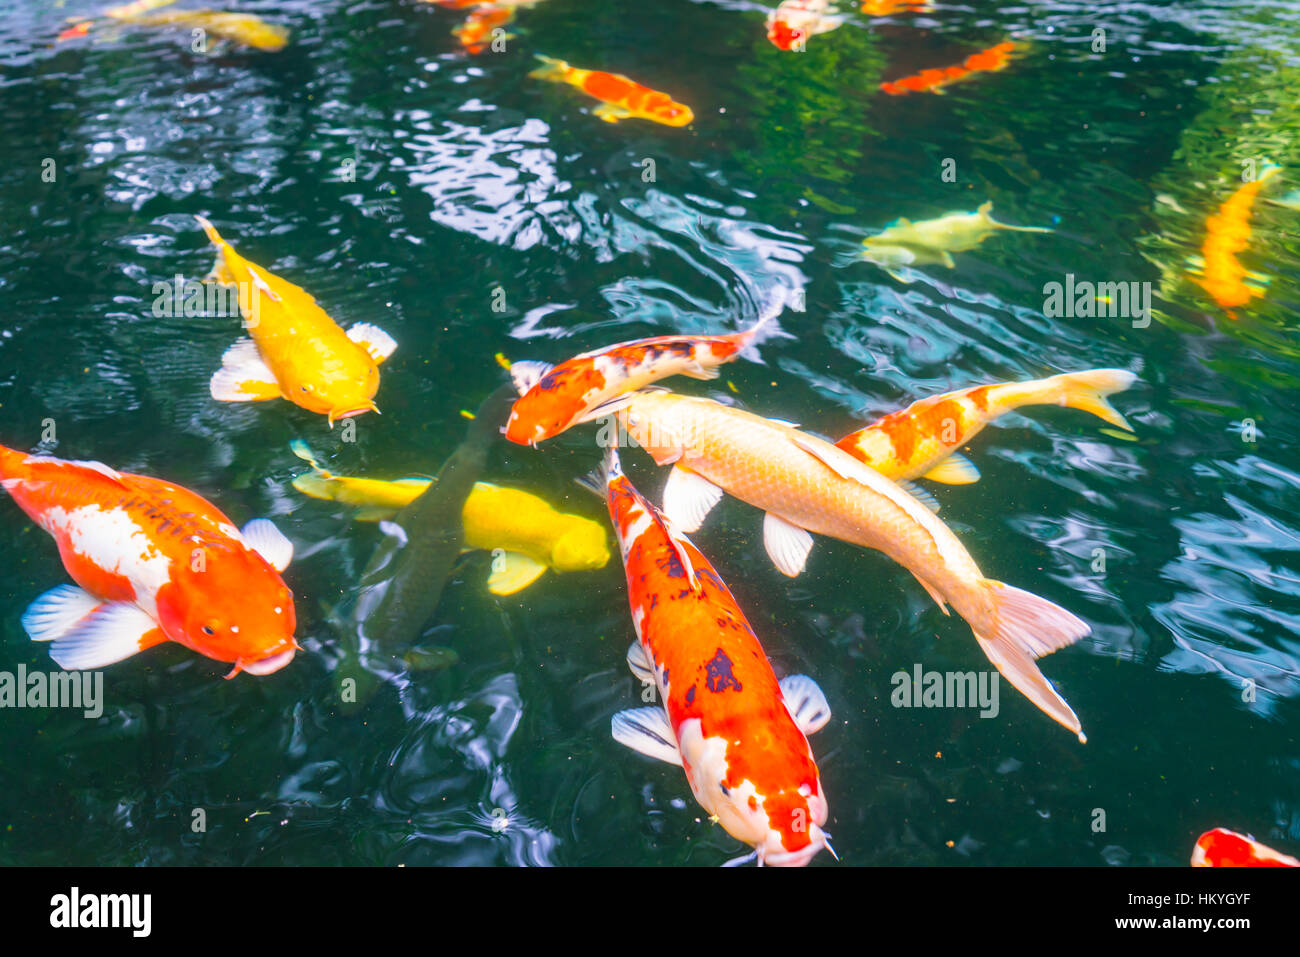 Colorful Koi fish swimming in water Stock Photo: 132757059 - Alamy